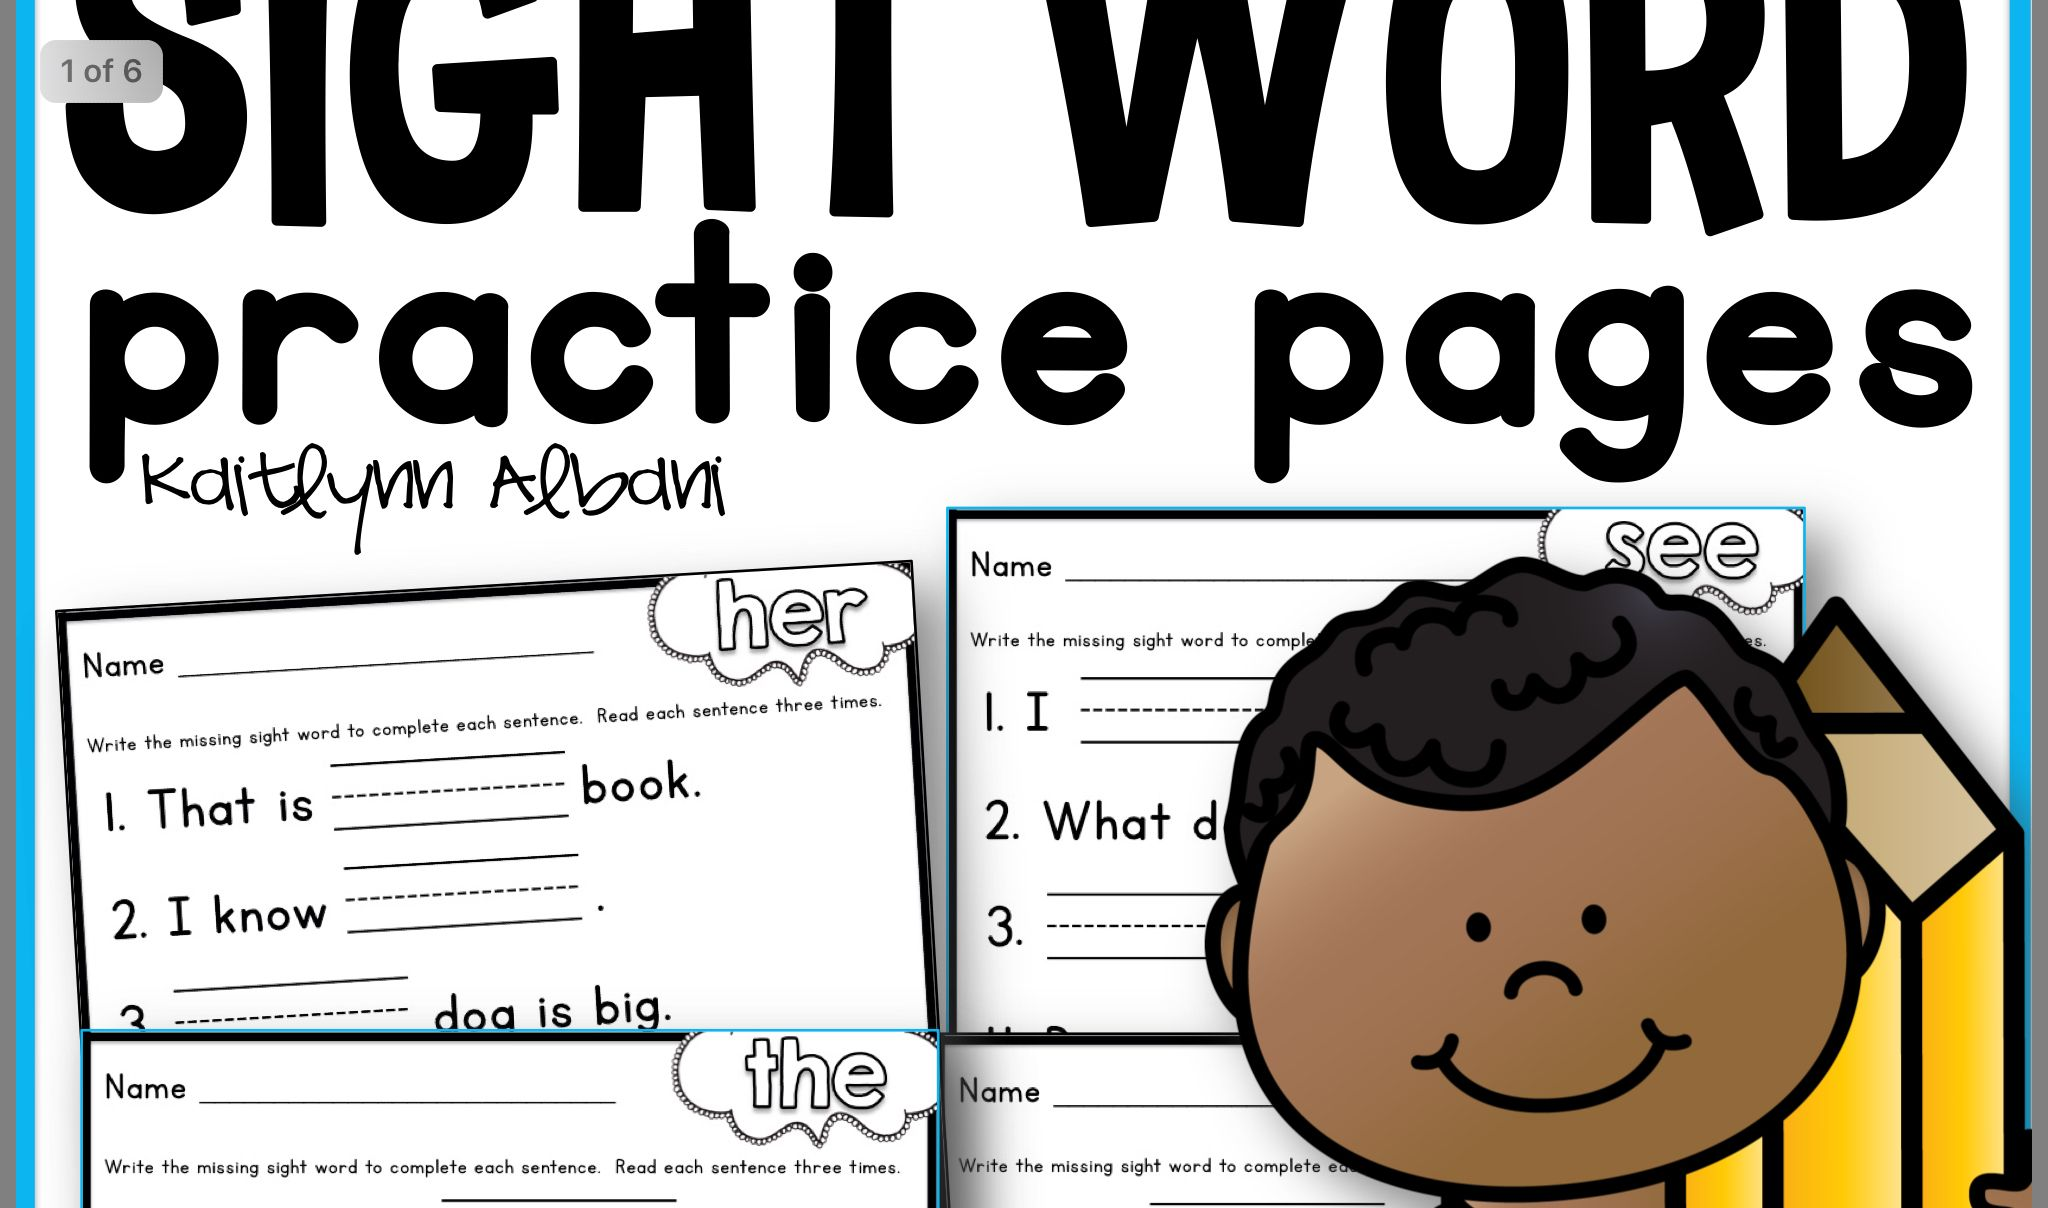 Pin by Gwen Peters on Sight word activities in 2020 | Word ...